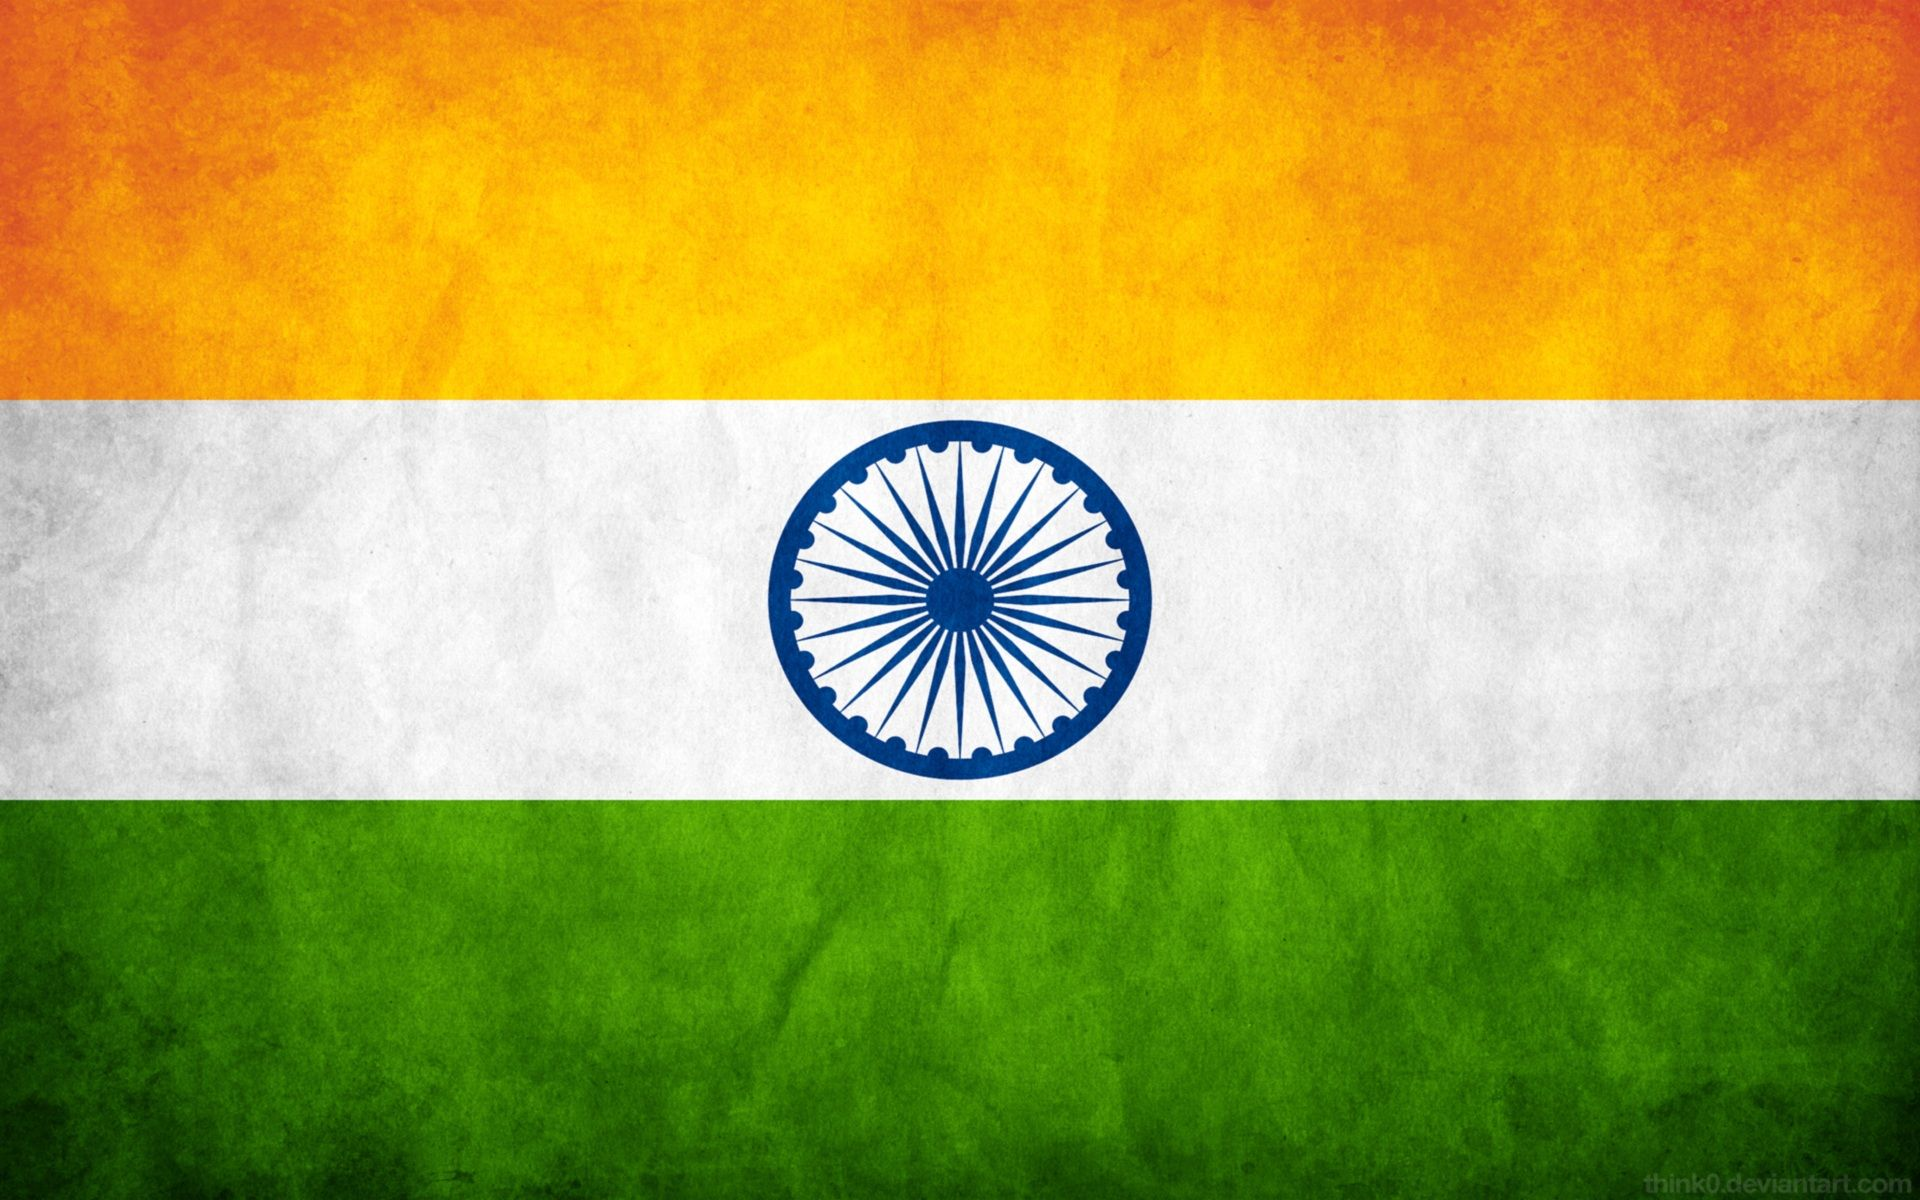 Download Indian Flag Wallpaper HD For Pc Gallery